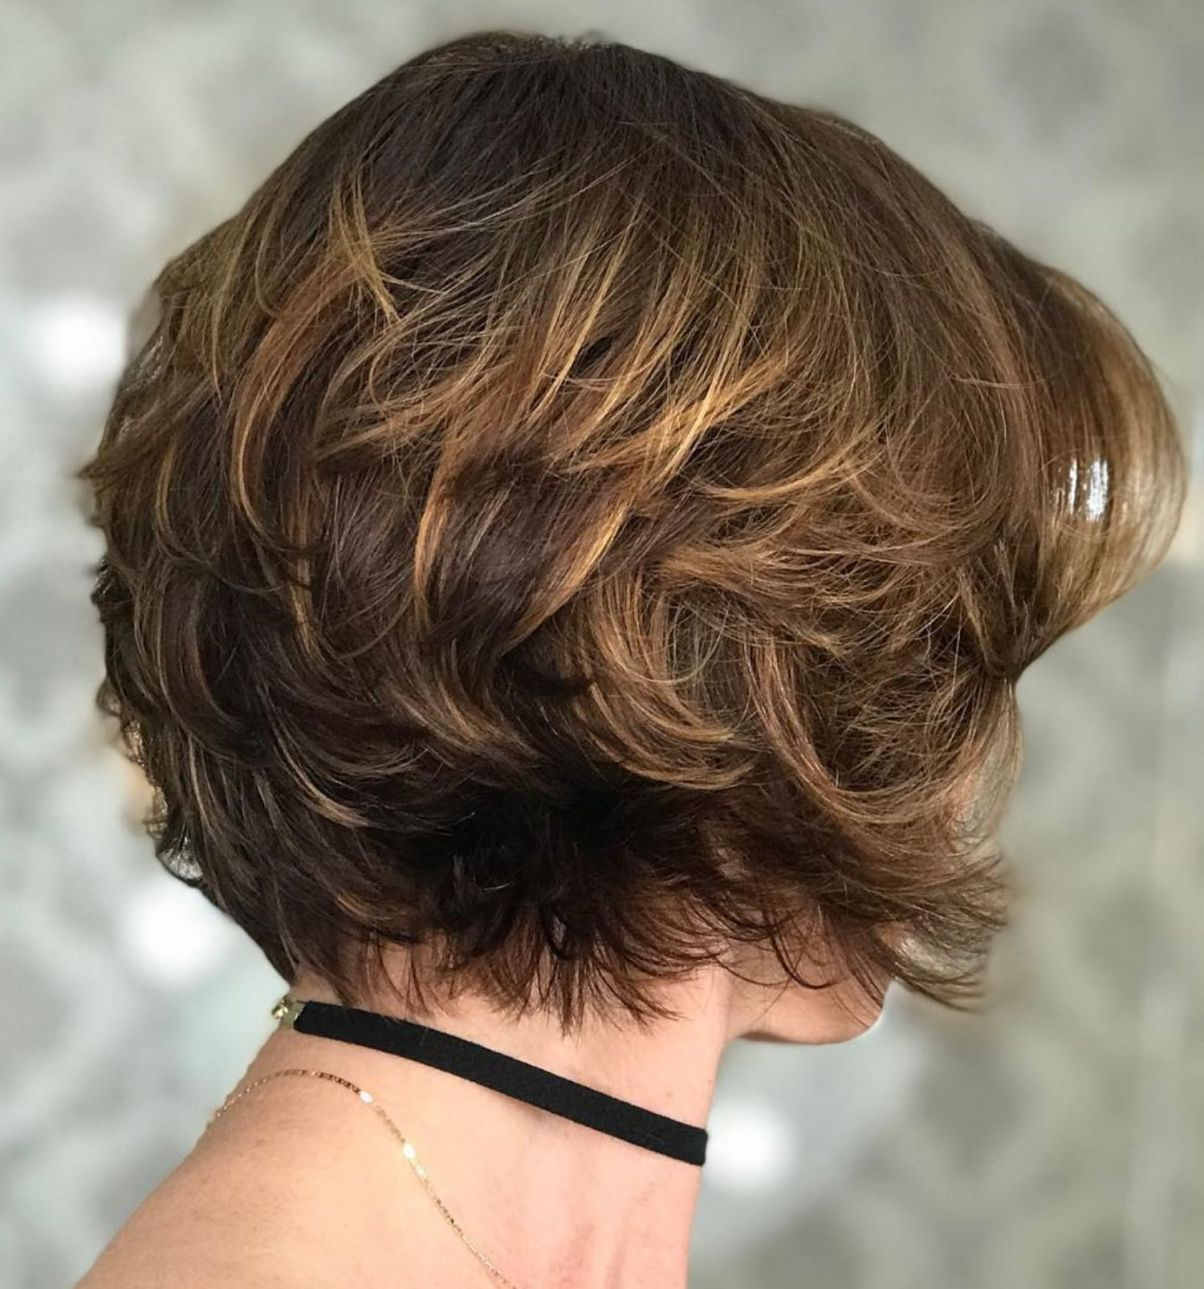 60 Classy Short Haircuts And Hairstyles For Thick Hair In 2020 Short Hairstyles For Thick Hair Haircut For Thick Hair Thick Hair Styles